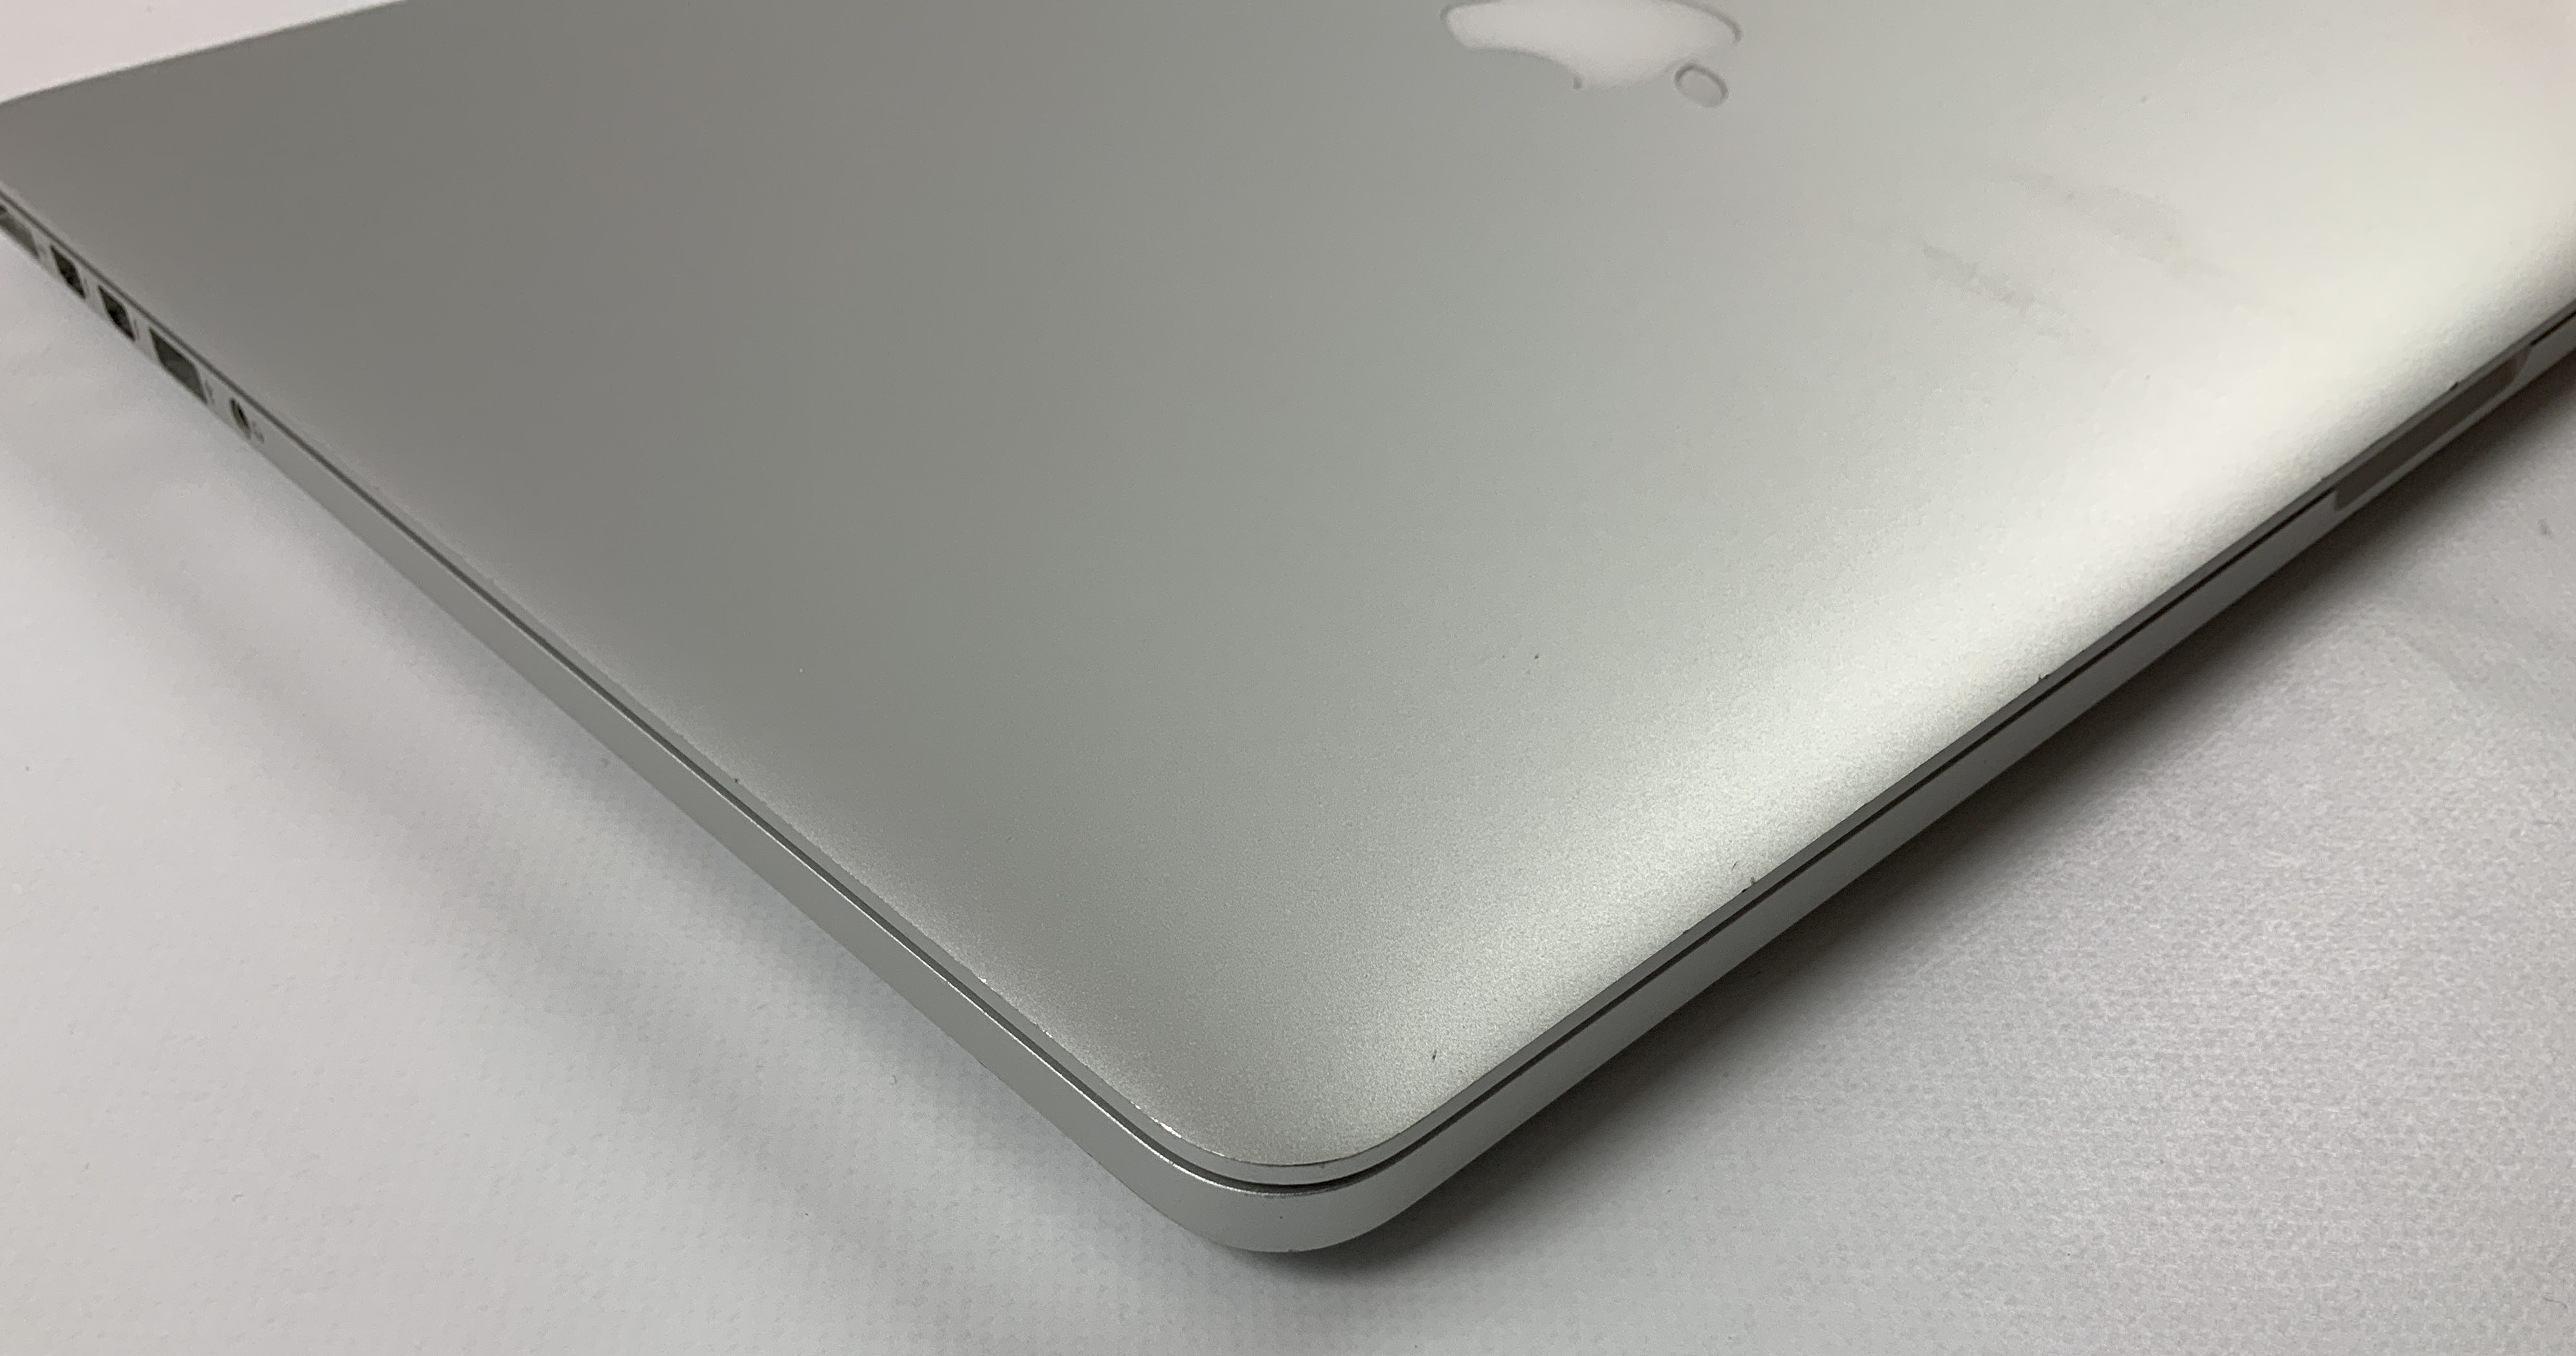 "MacBook Pro Retina 15"" Mid 2014 (Intel Quad-Core i7 2.5 GHz 16 GB RAM 512 GB SSD), Intel Quad-Core i7 2.5 GHz, 16 GB RAM, 512 GB SSD, Bild 3"